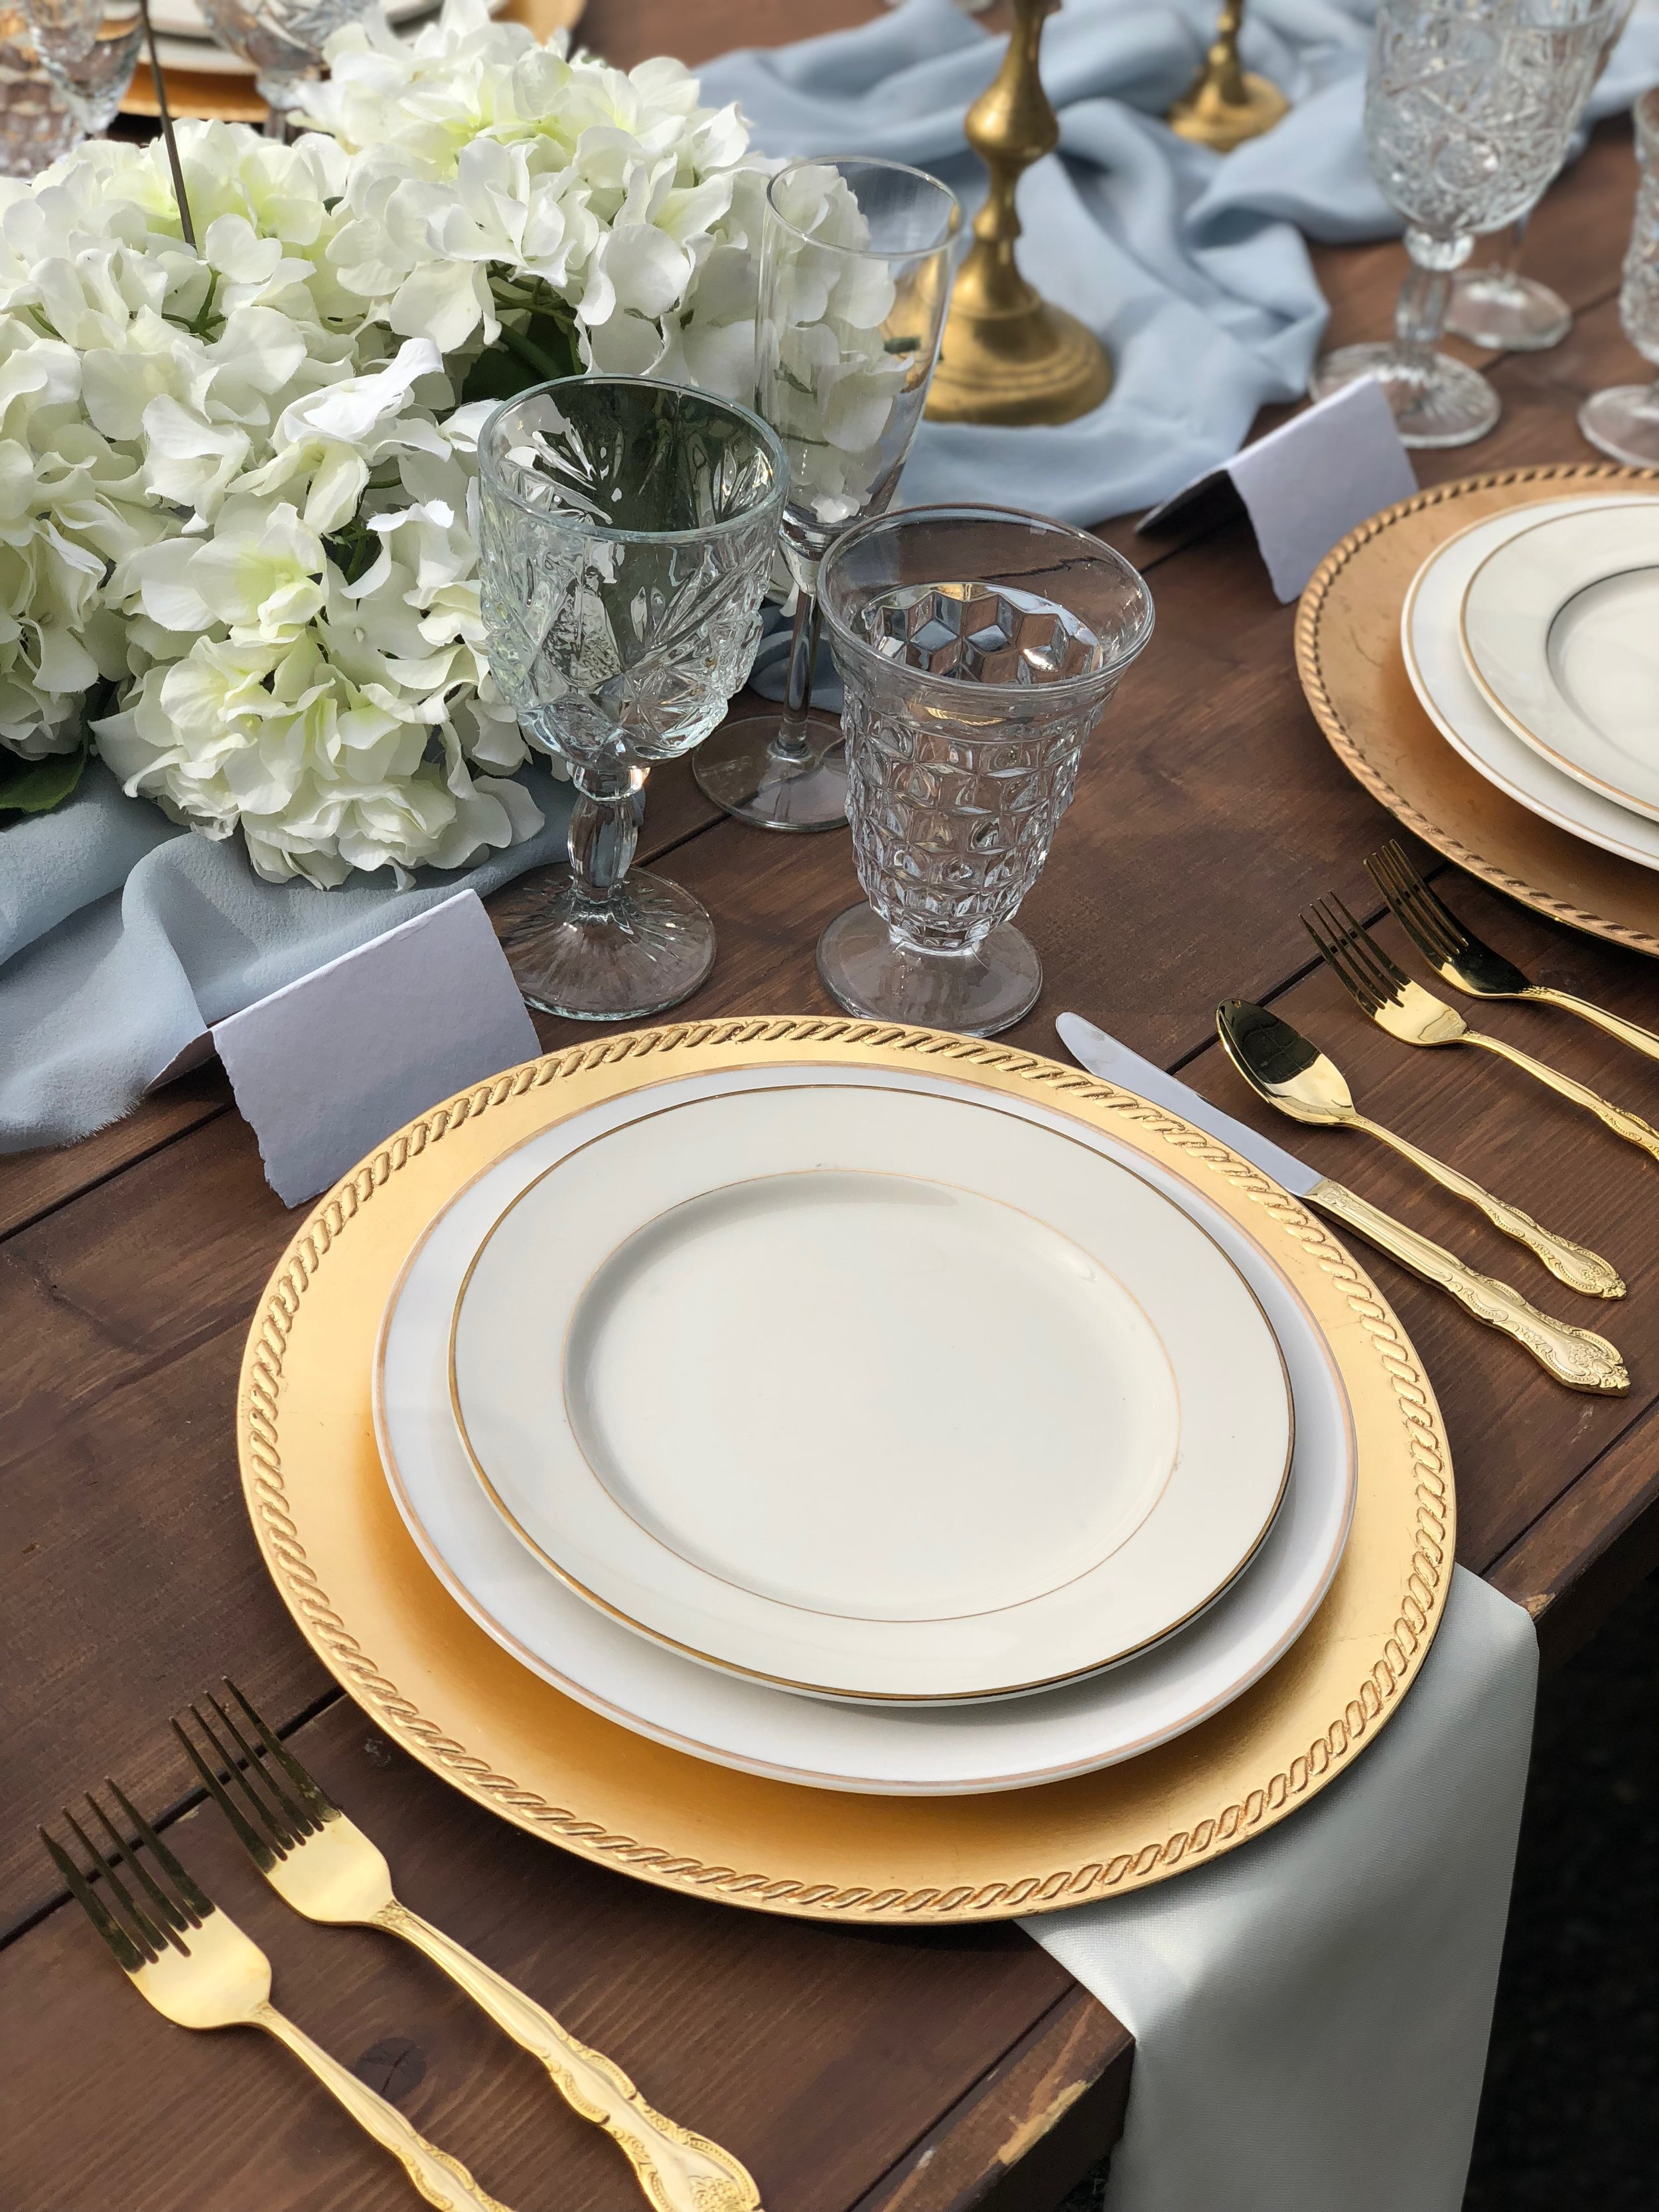 Rentals | Danner & Soli  Flatware | Glass Slipper Rentals  Table Runner | Tono & Co.  Planning & Styling | To Be Loved Events, Anela Events